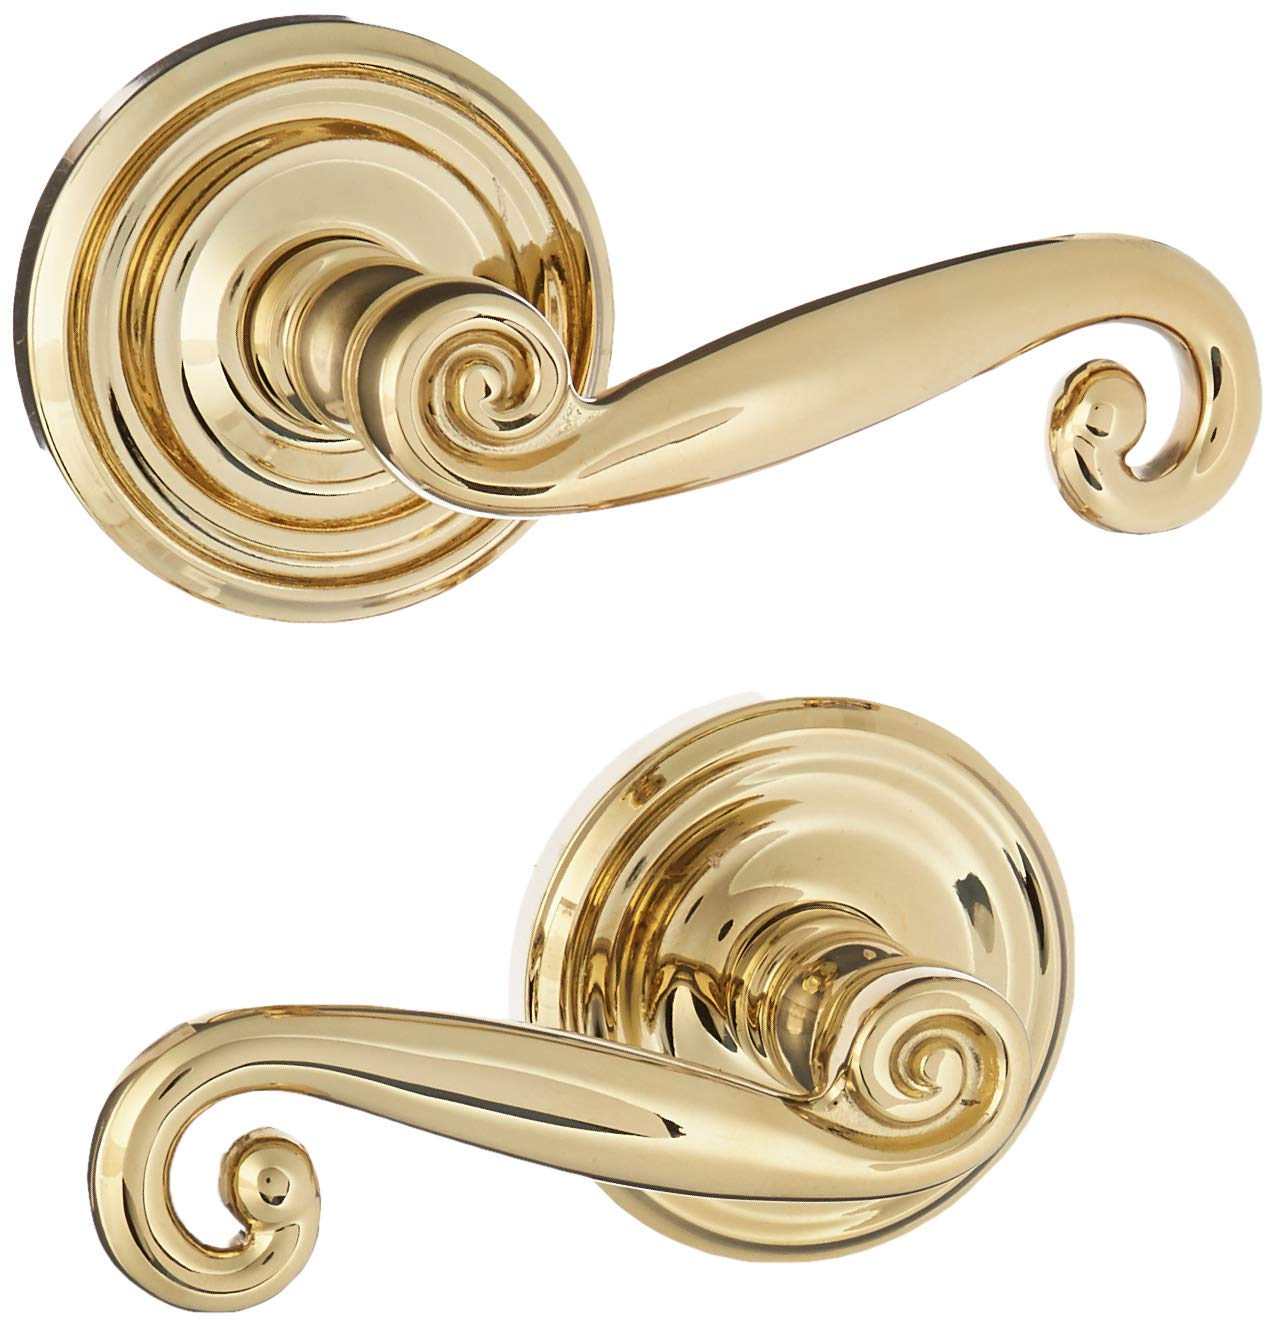 Old Door Knobs. Classic Rosette Set With Elan Levers Right Hand Double Dummy In Polished Brass